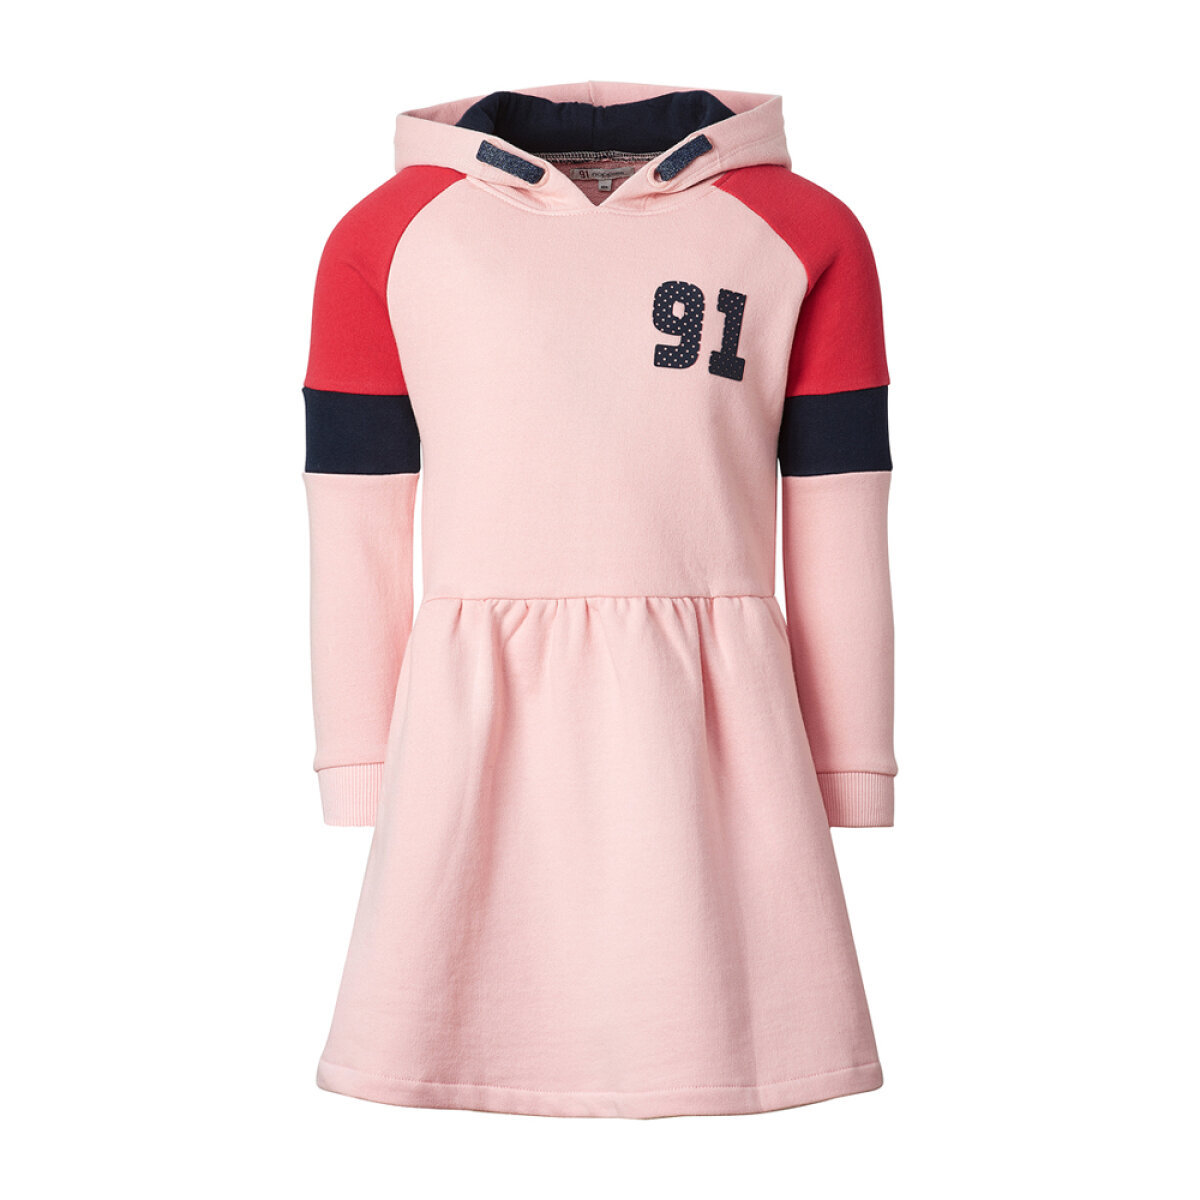 Noppies meisjes sweatdress 20560413 roze